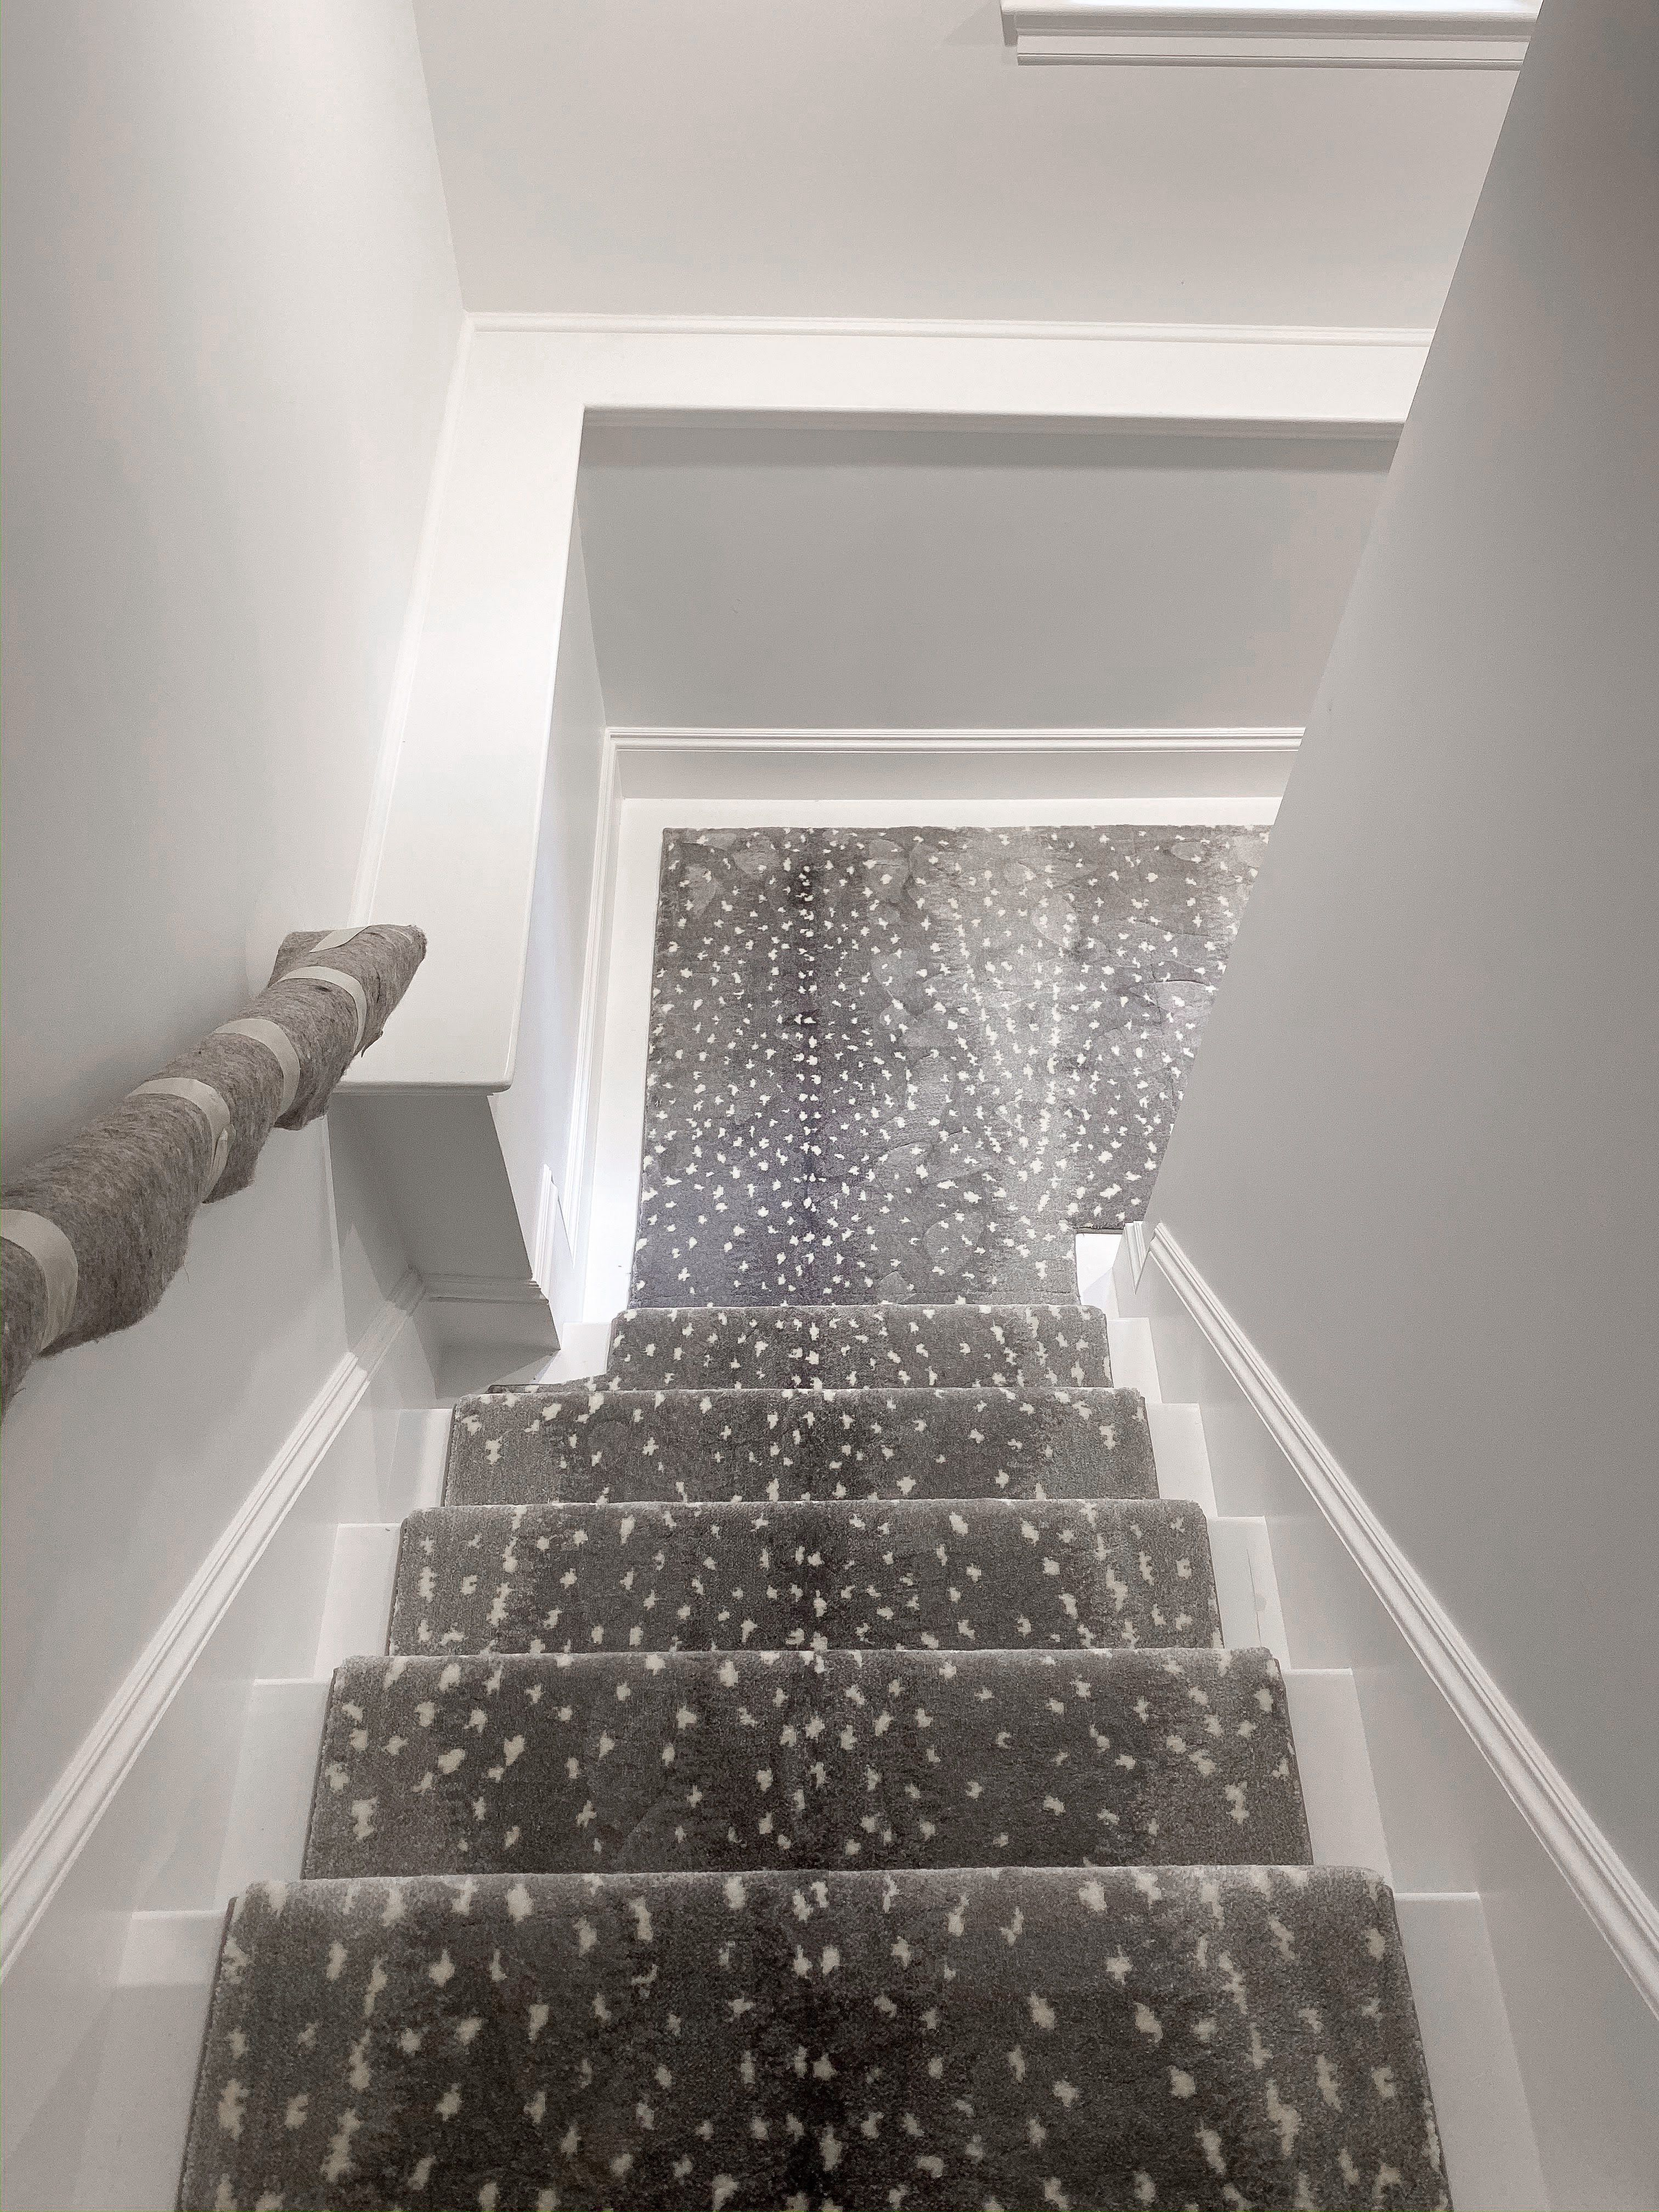 Impala Carpet In 2020 Carpet Stairs Stair Runner Animal Print   Durable Carpet For Stairs   Straight   Trendy   Different Style Stair   Hallway   Stair Residential